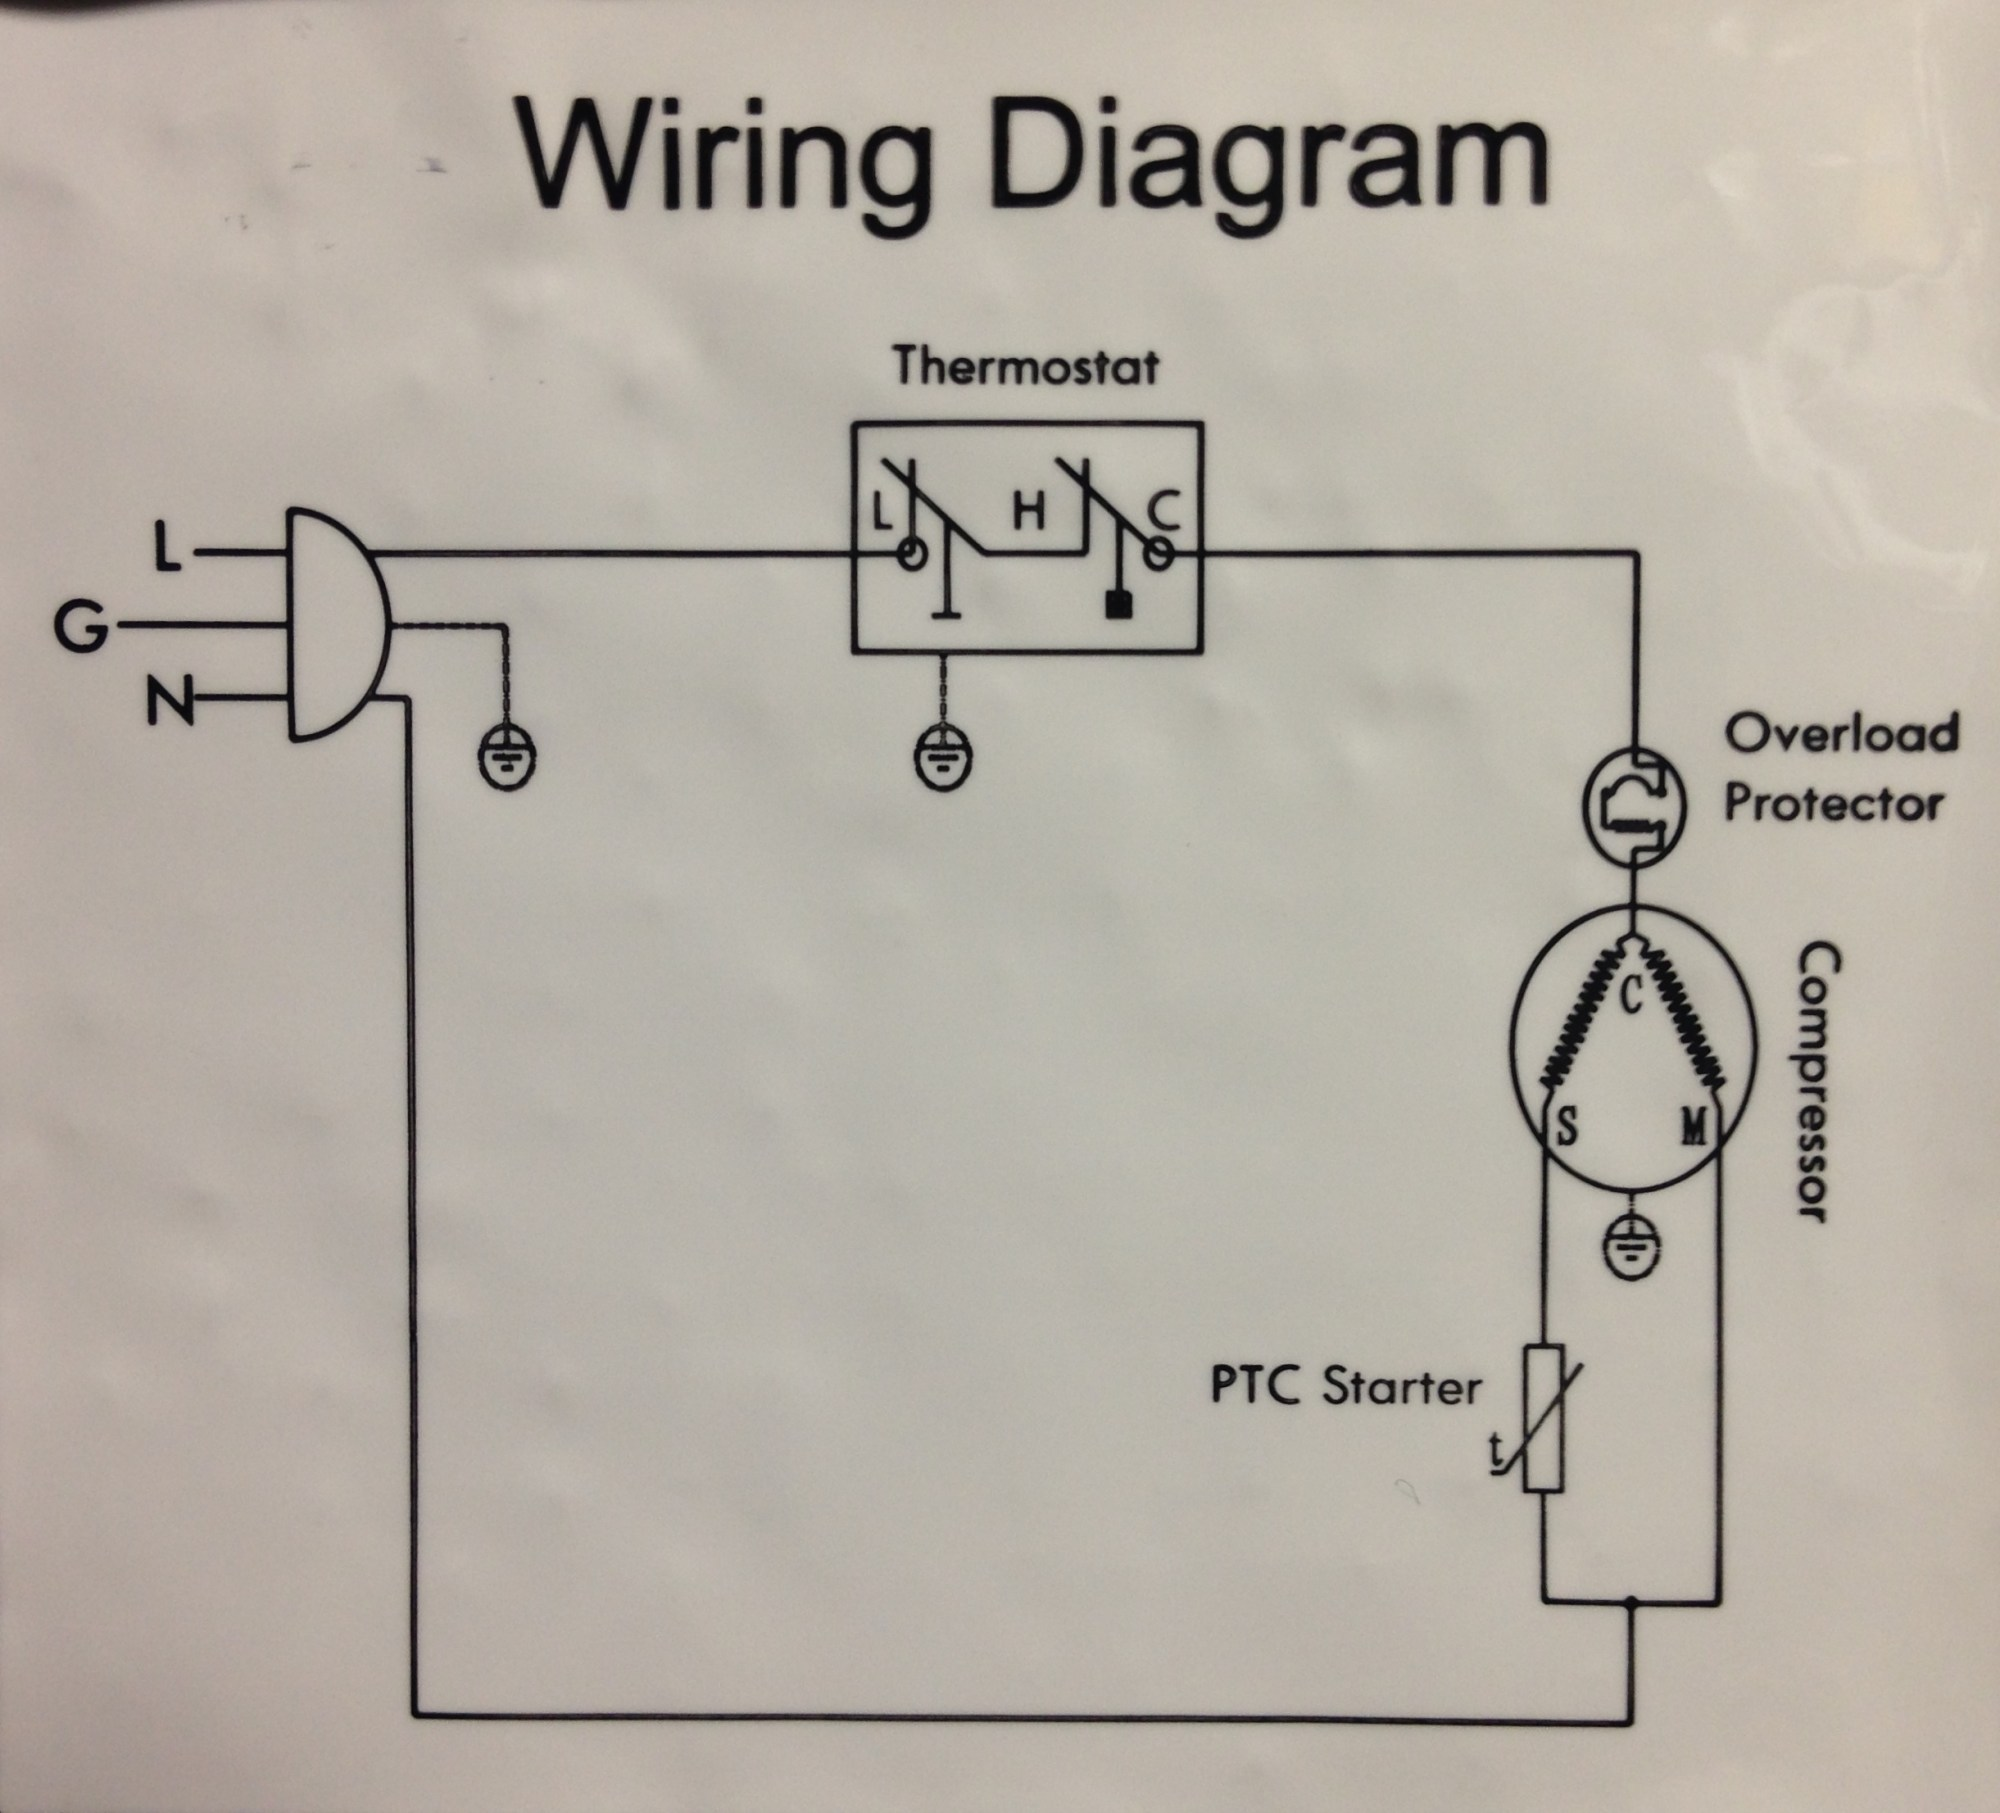 hight resolution of wiring diagram for refrigerator thermostat wiring diagram imp wiring diagram true freezer wiring diagram freezer